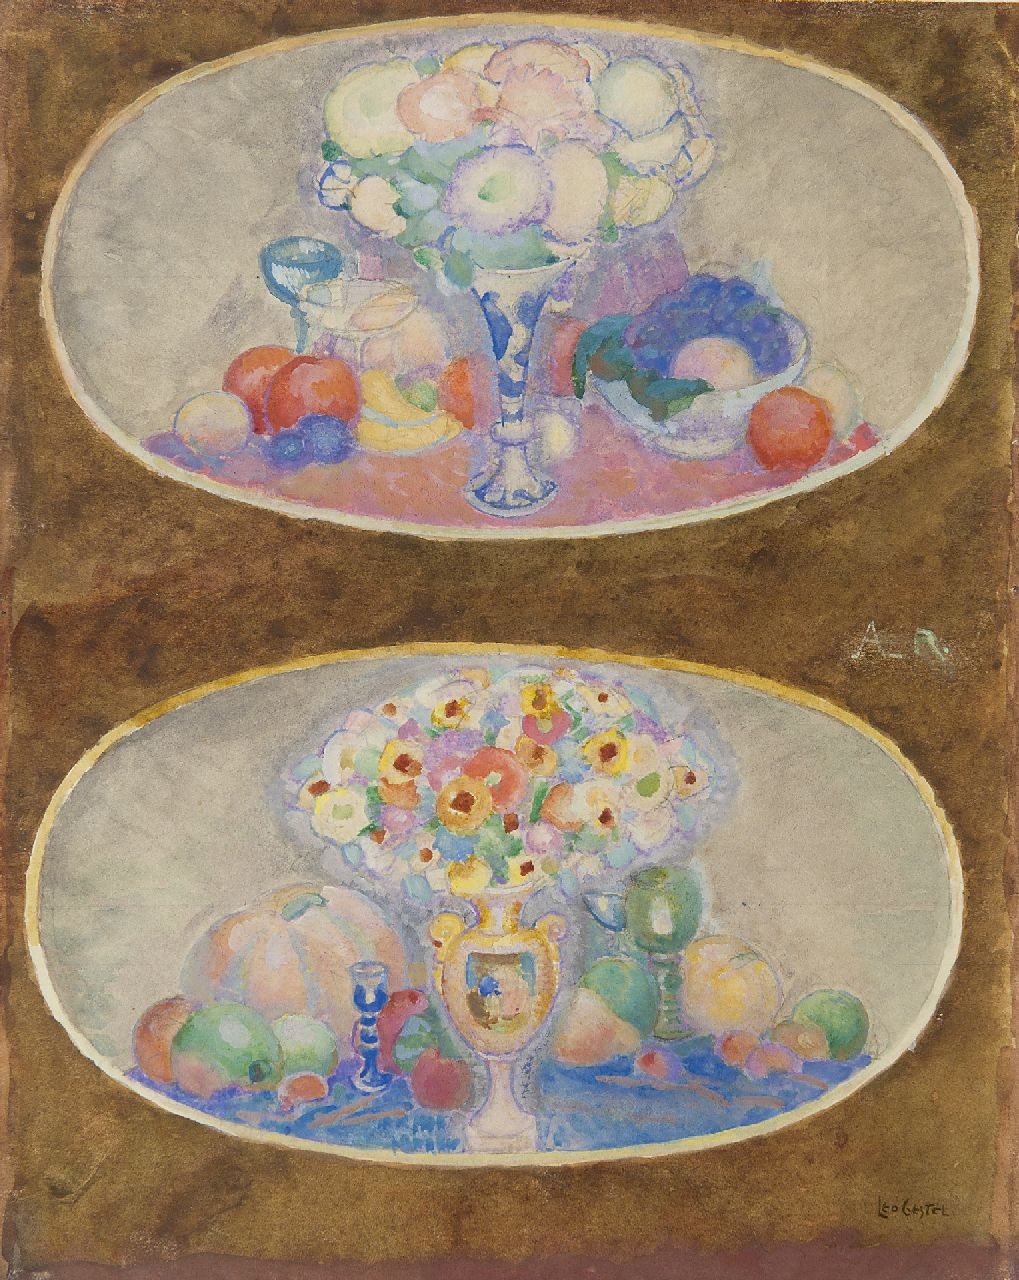 Gestel L.  | Leendert 'Leo' Gestel | Watercolours and drawings offered for sale | Flower medallions, watercolour on paper 28.8 x 22.9 cm, signed l.r.